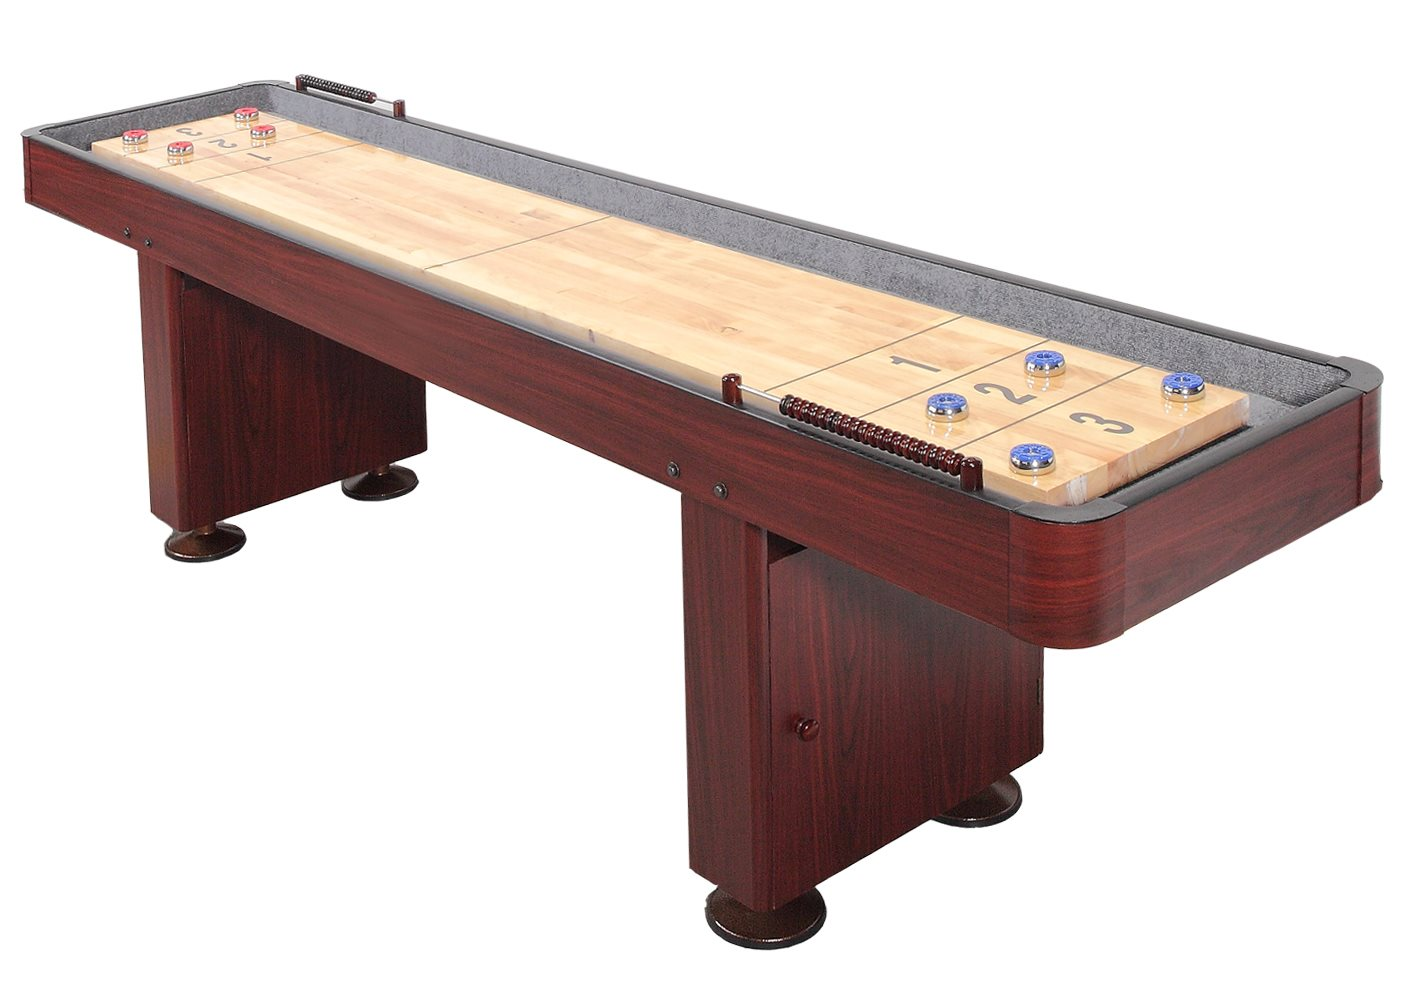 Carmelli Challenger 9 Shuffleboard Table - Dark Cherry Finish